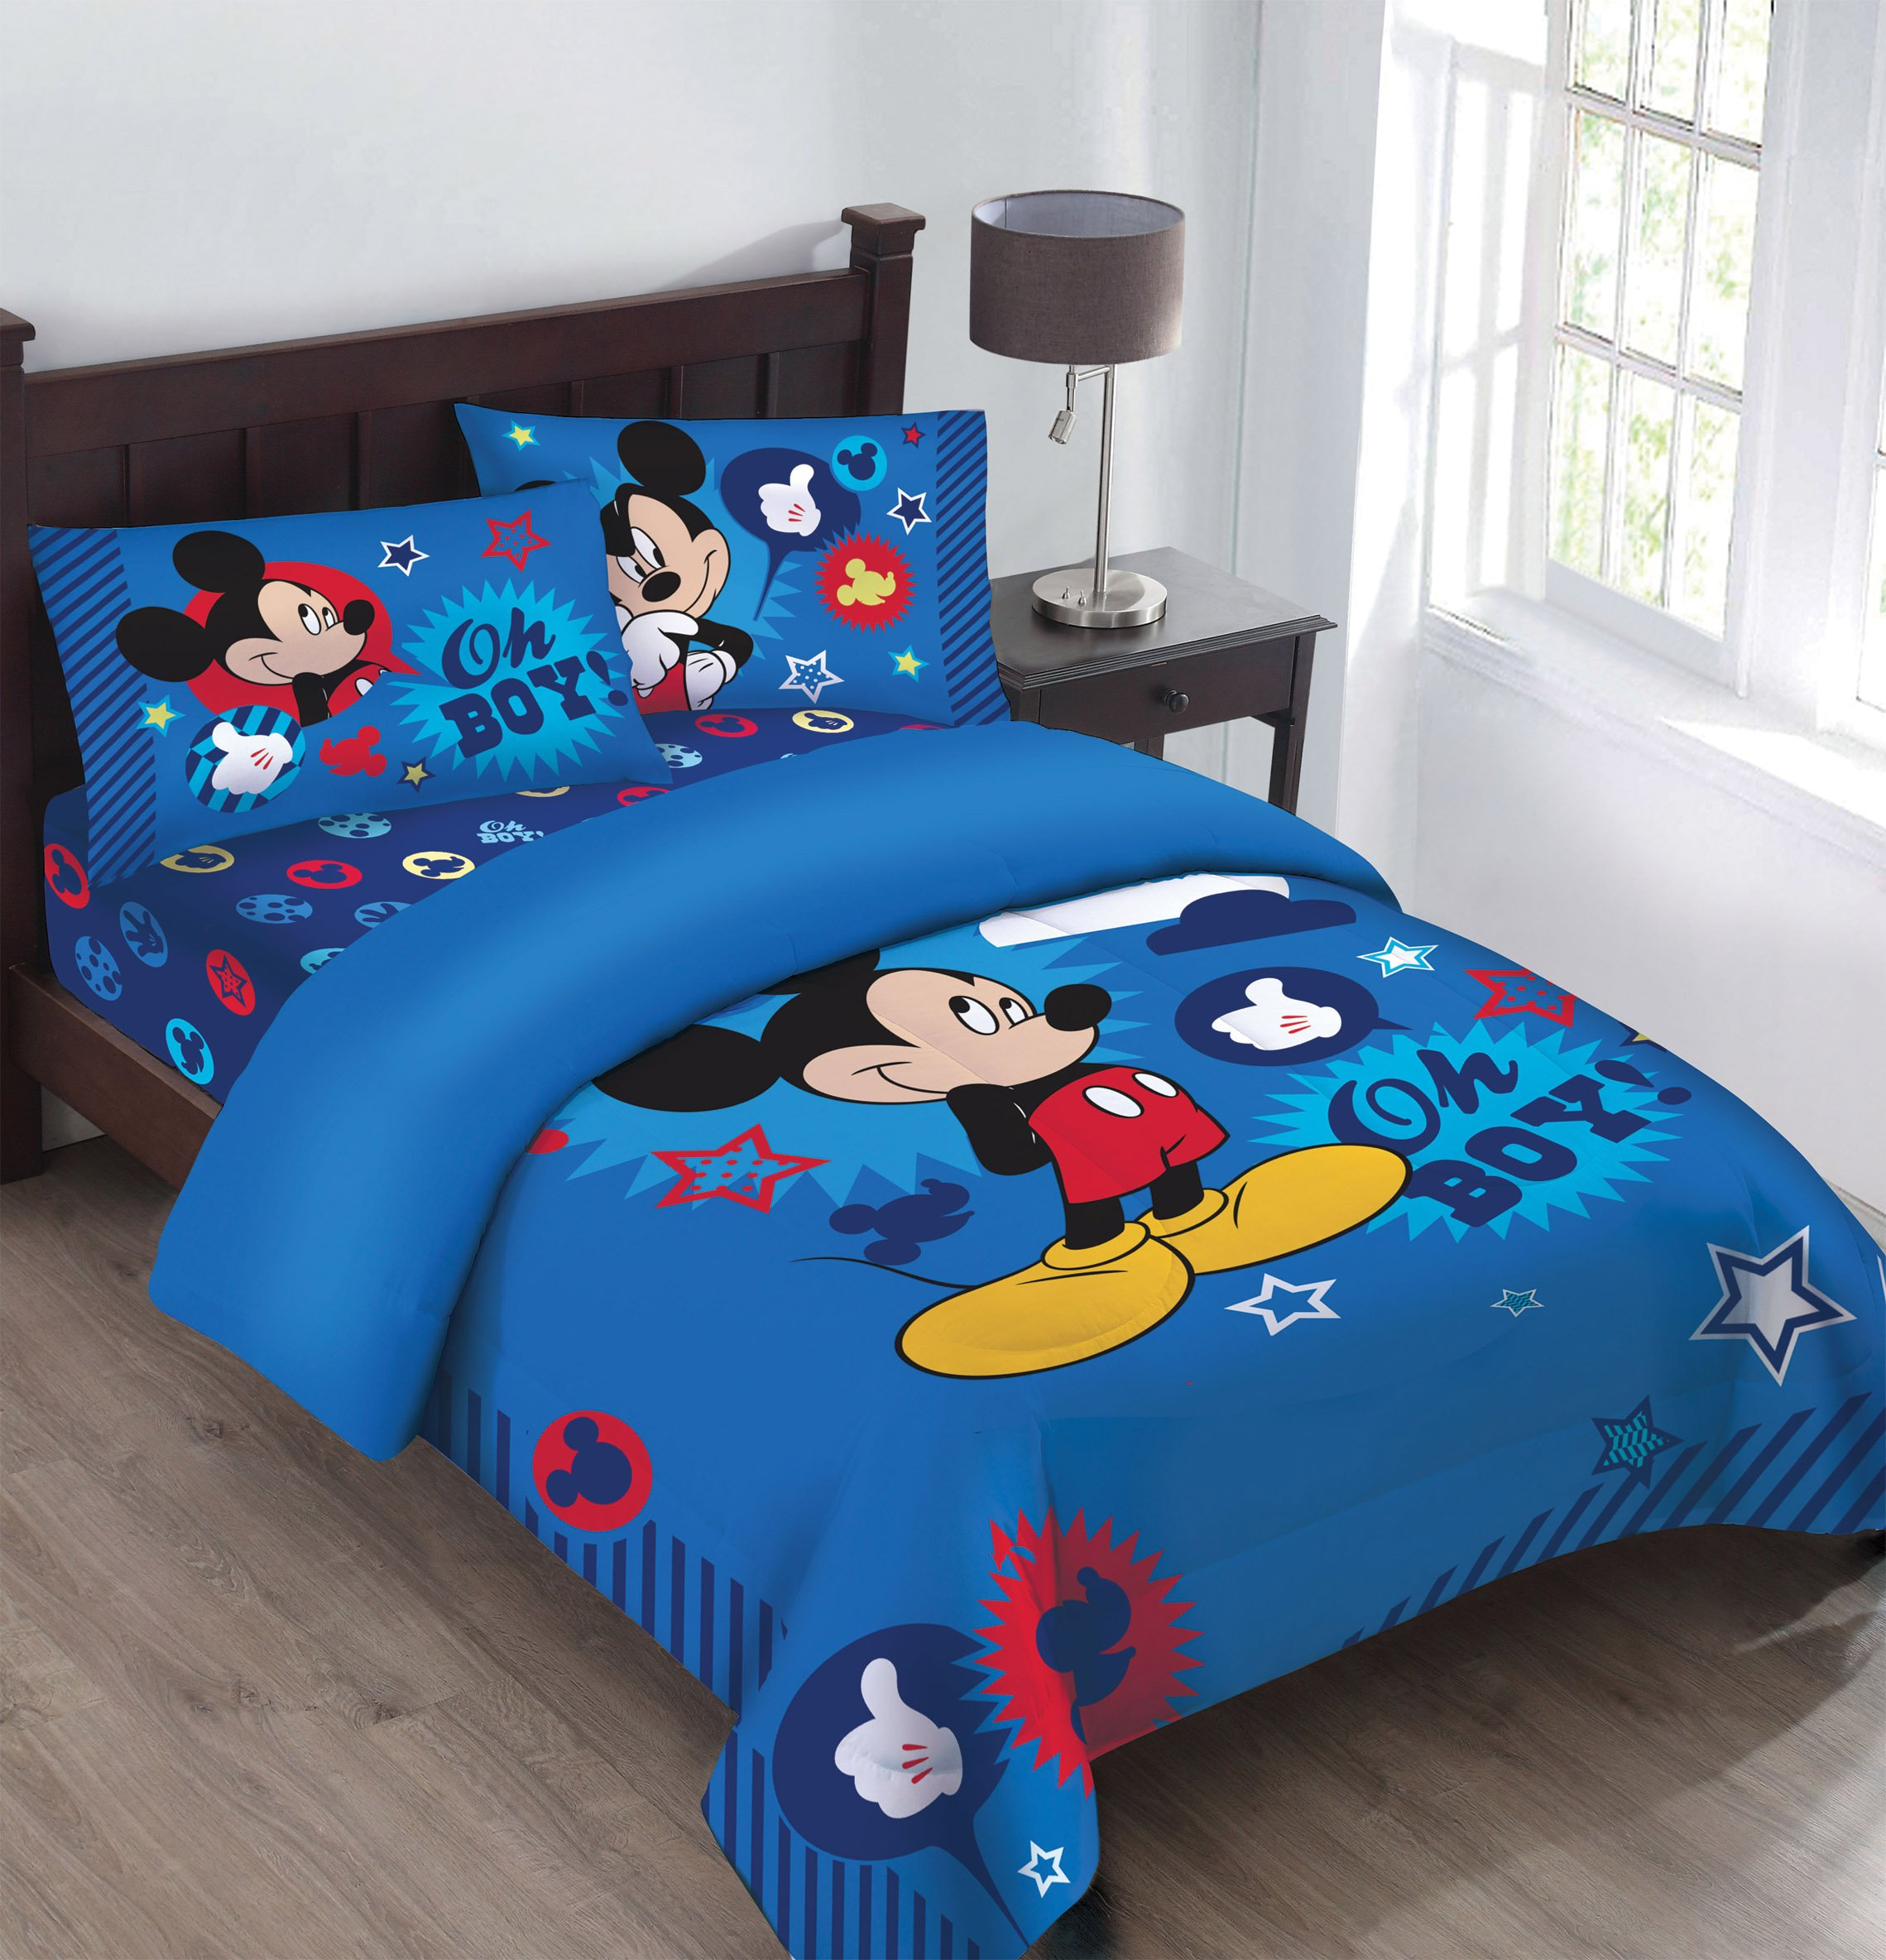 Disney Mickey Oh Boy! Gosh Licensed Twin Comforter Set Set w/Fitted Sheet by Disney